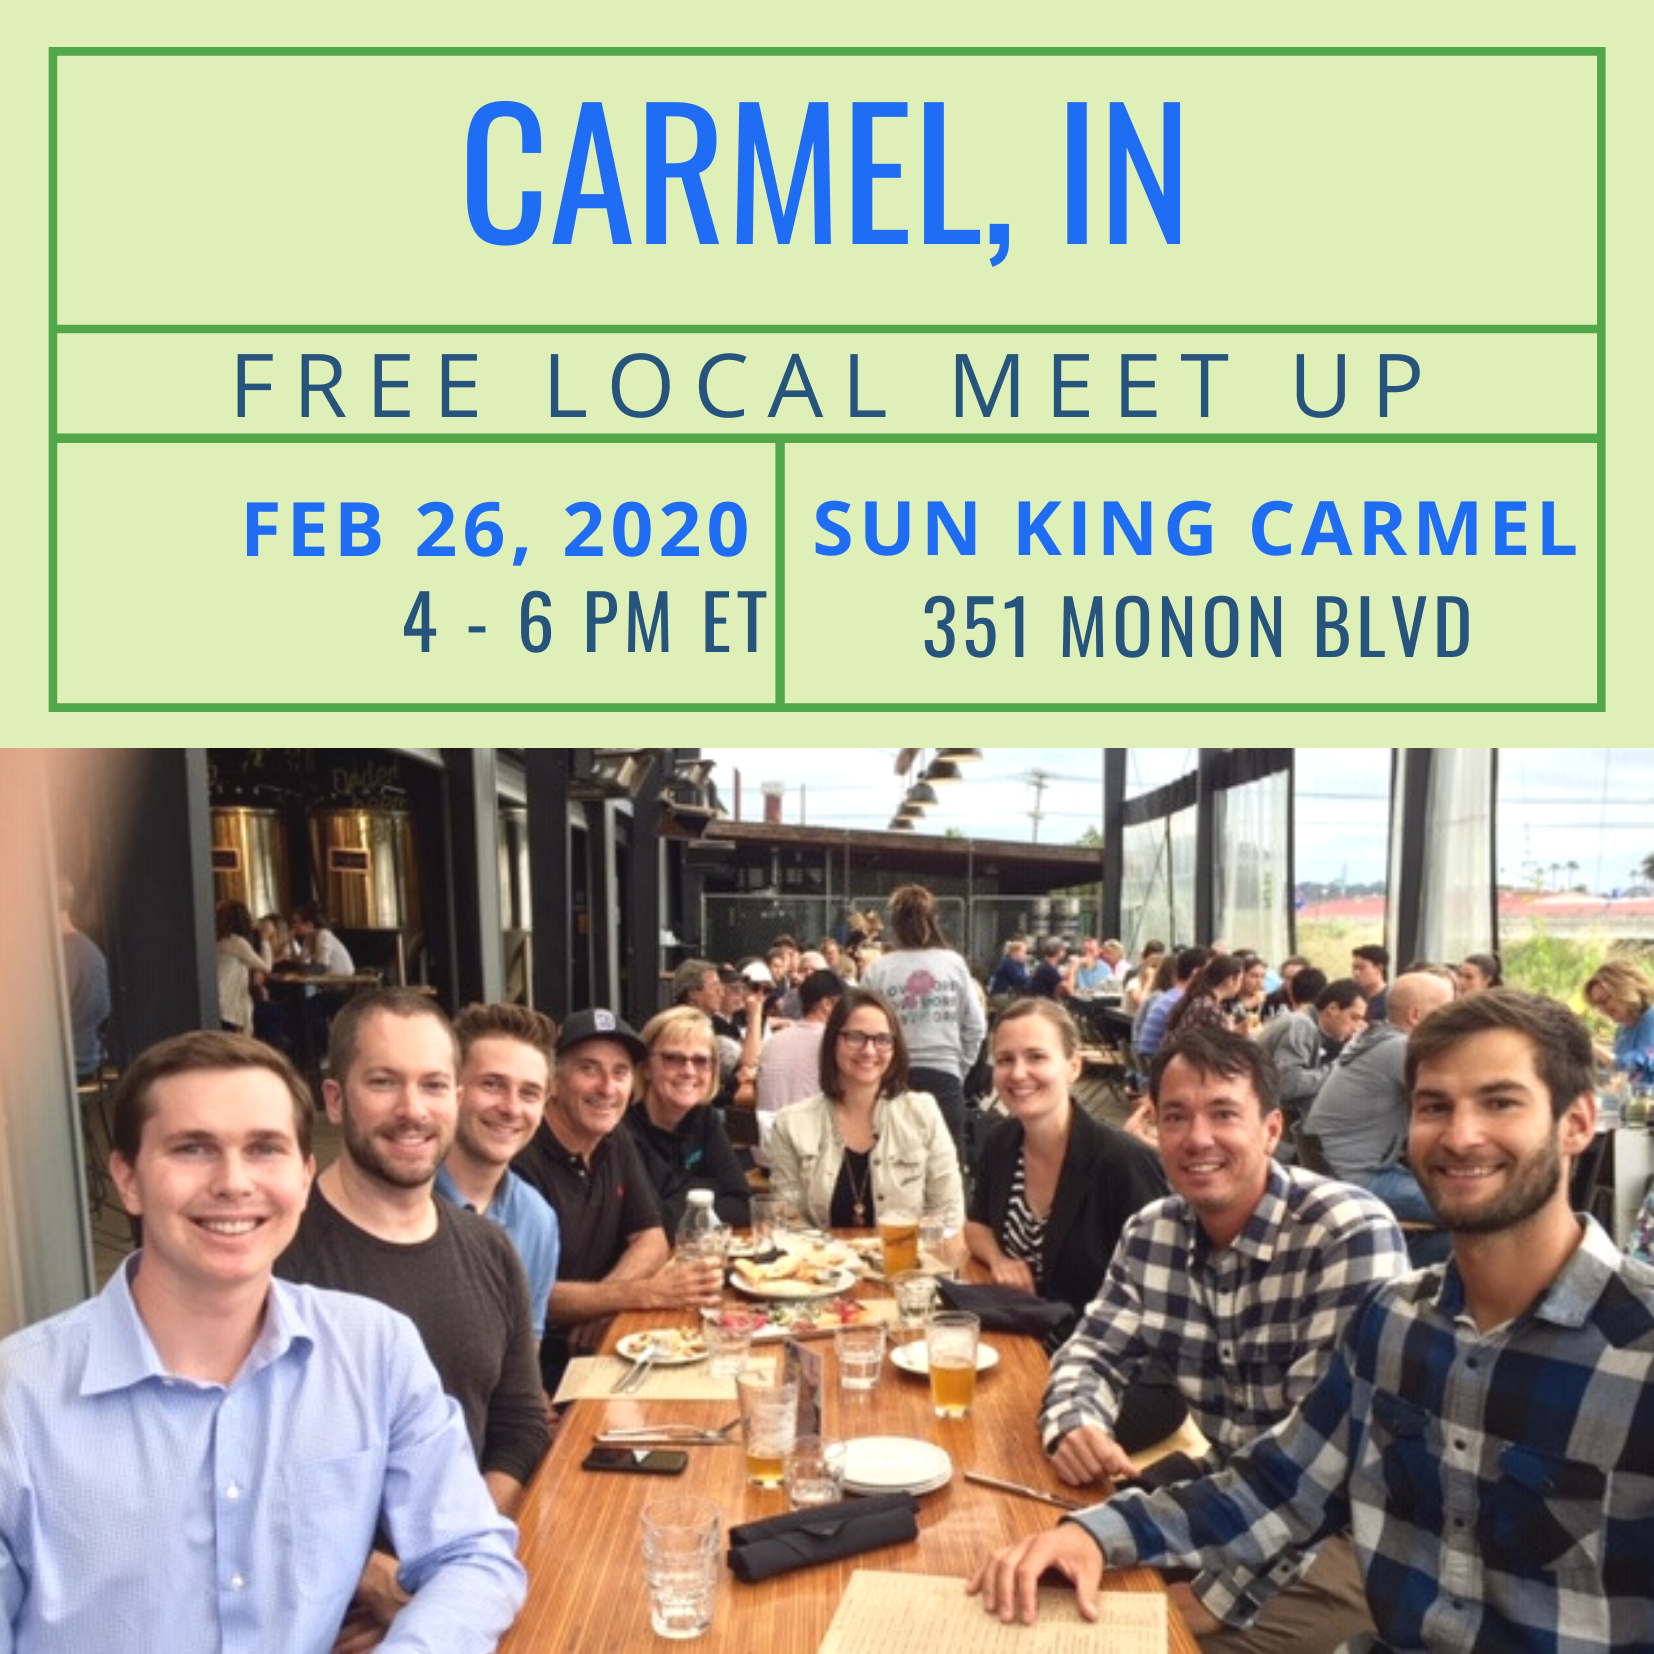 Free Local Meet-Up in Carmel, IN on Tuesday, February 25